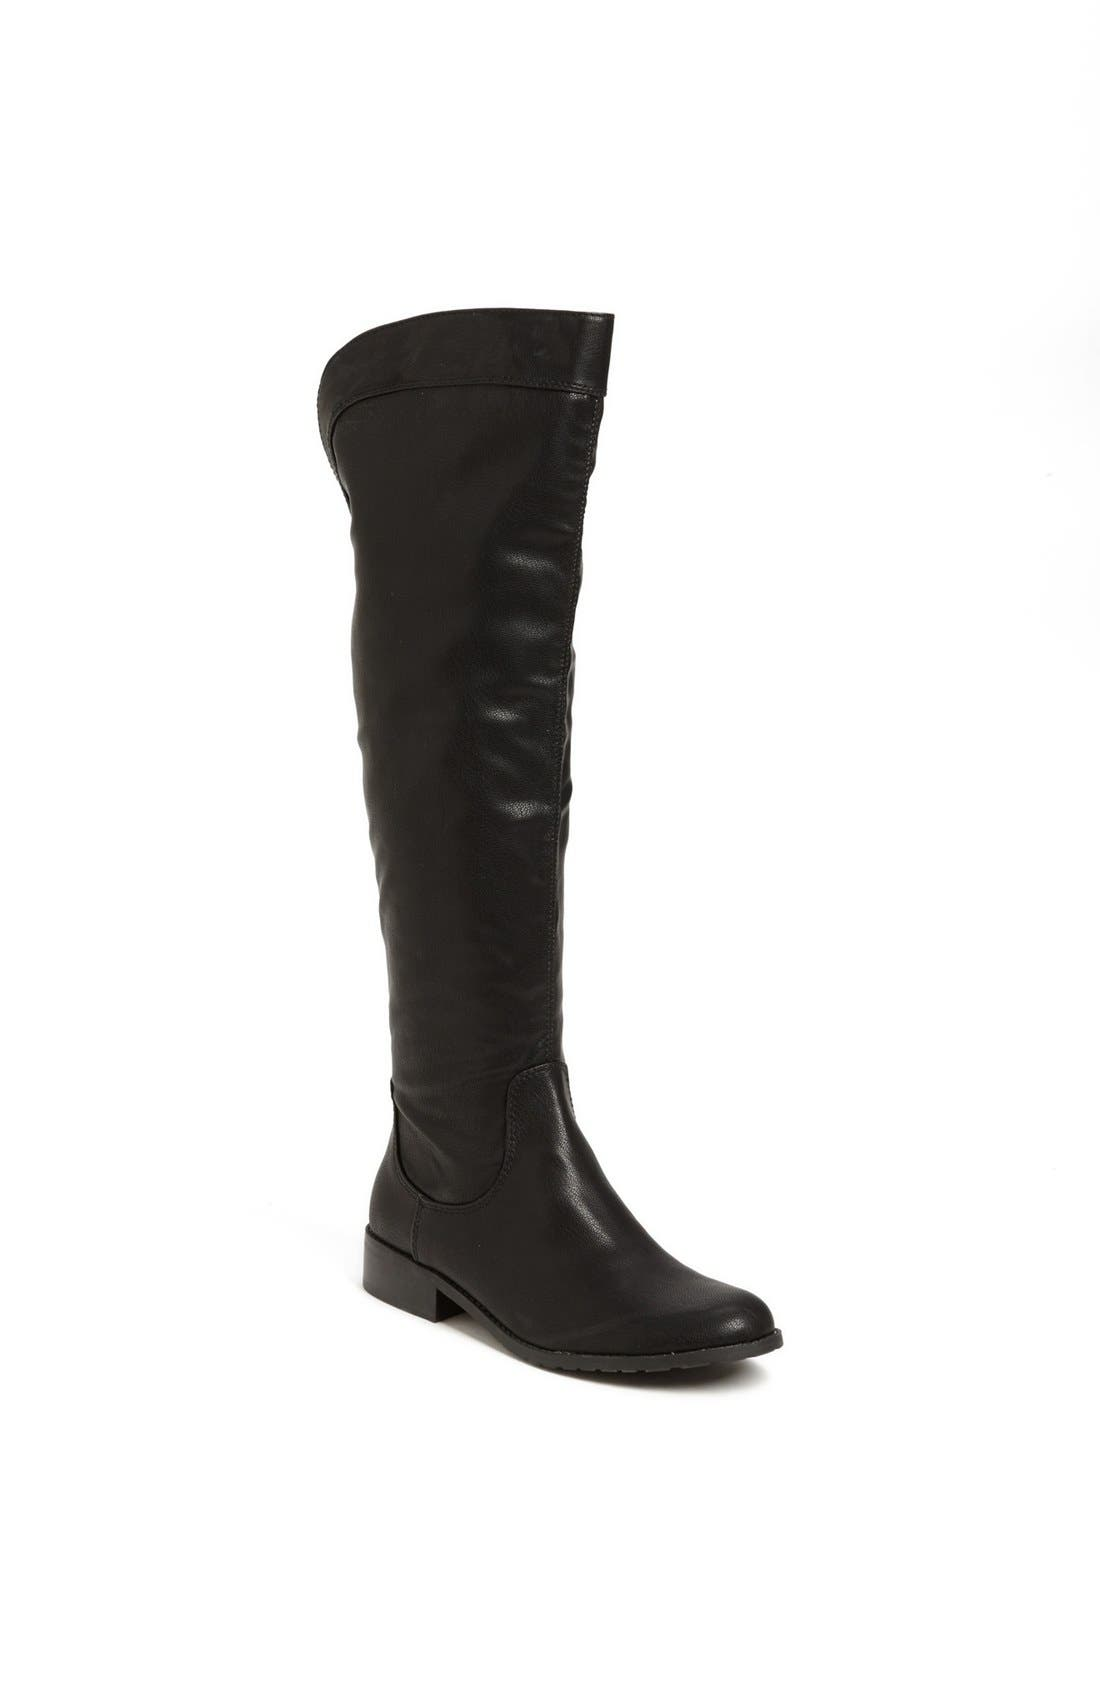 Alternate Image 1 Selected - Fergie 'Metro' Over the Knee Boot